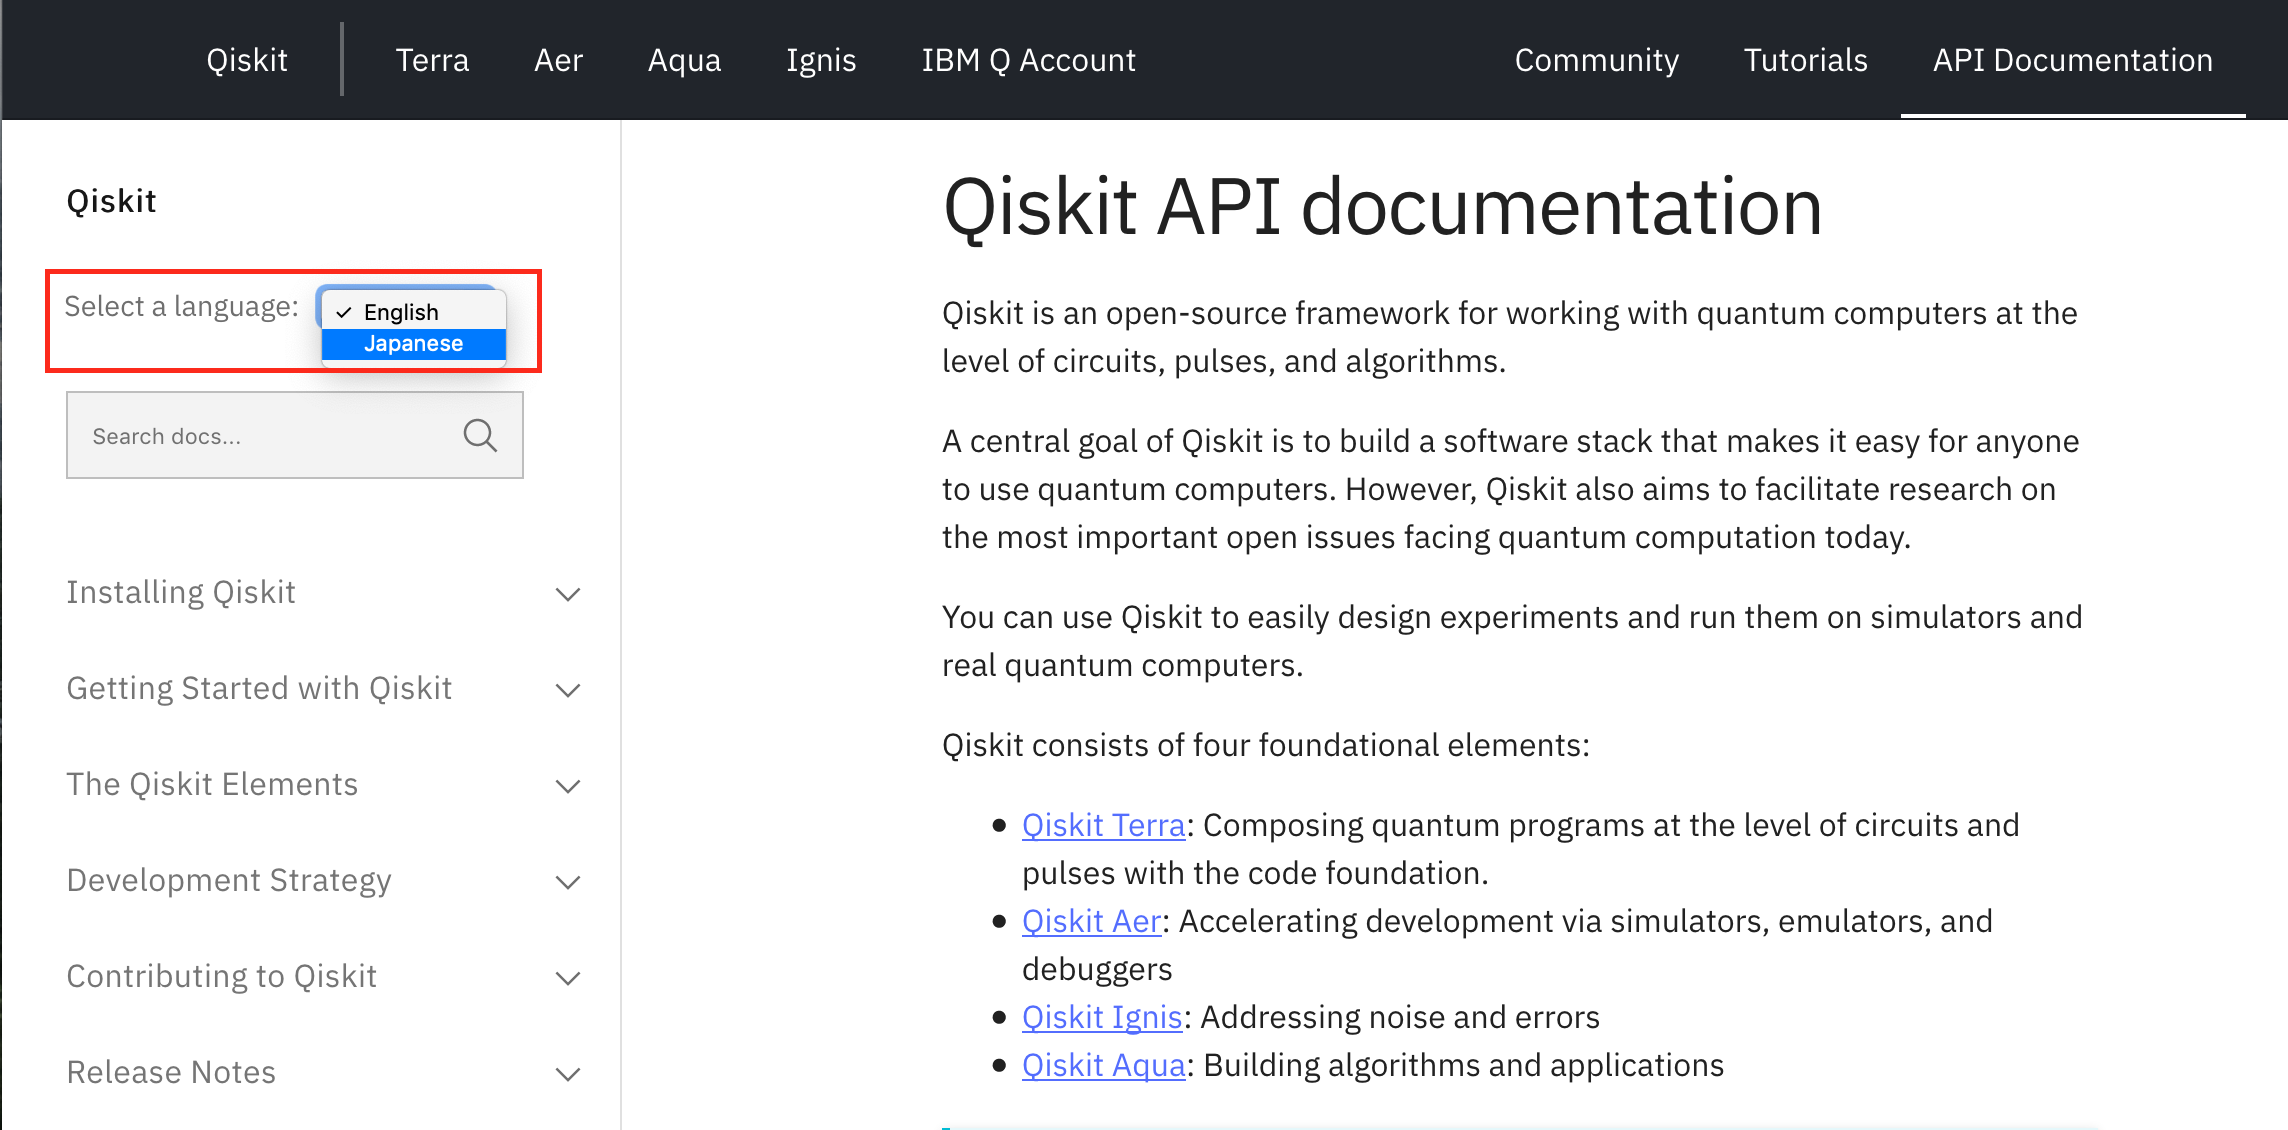 Qiskit API documentation page showing the drop down language selection menu on the top left corner.